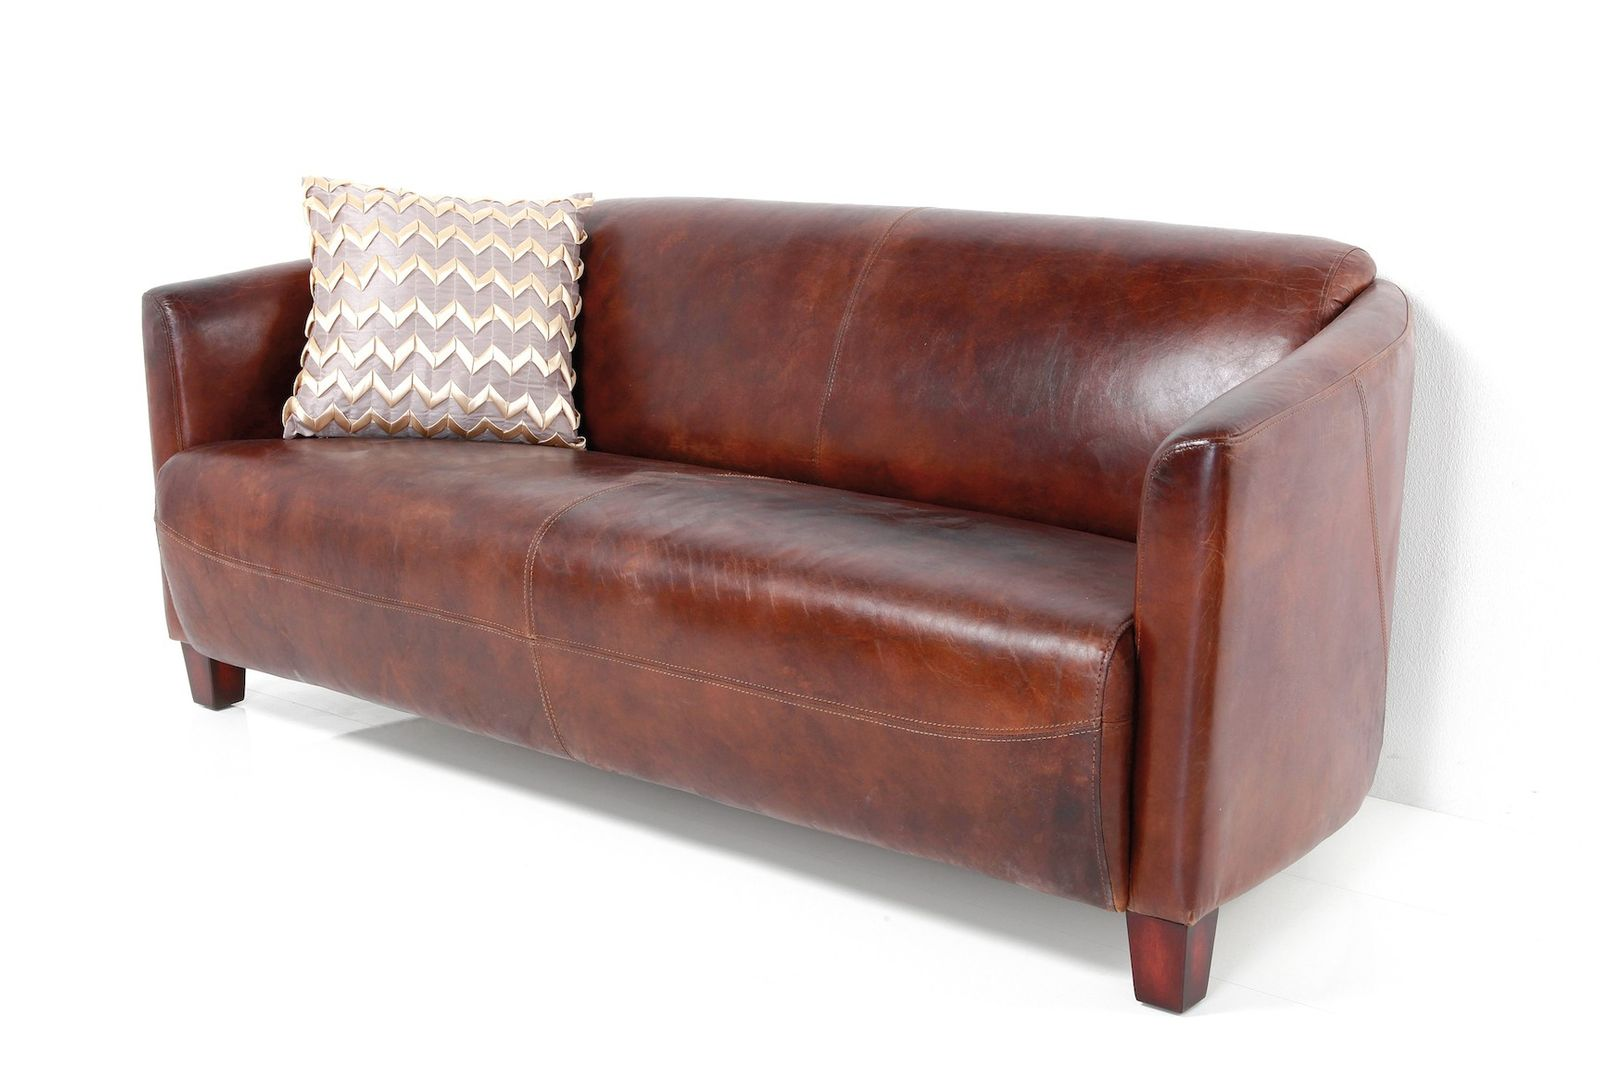 dewall sofa cigar lounge brown ledersofa 3 sitzer 3er loungesofa. Black Bedroom Furniture Sets. Home Design Ideas